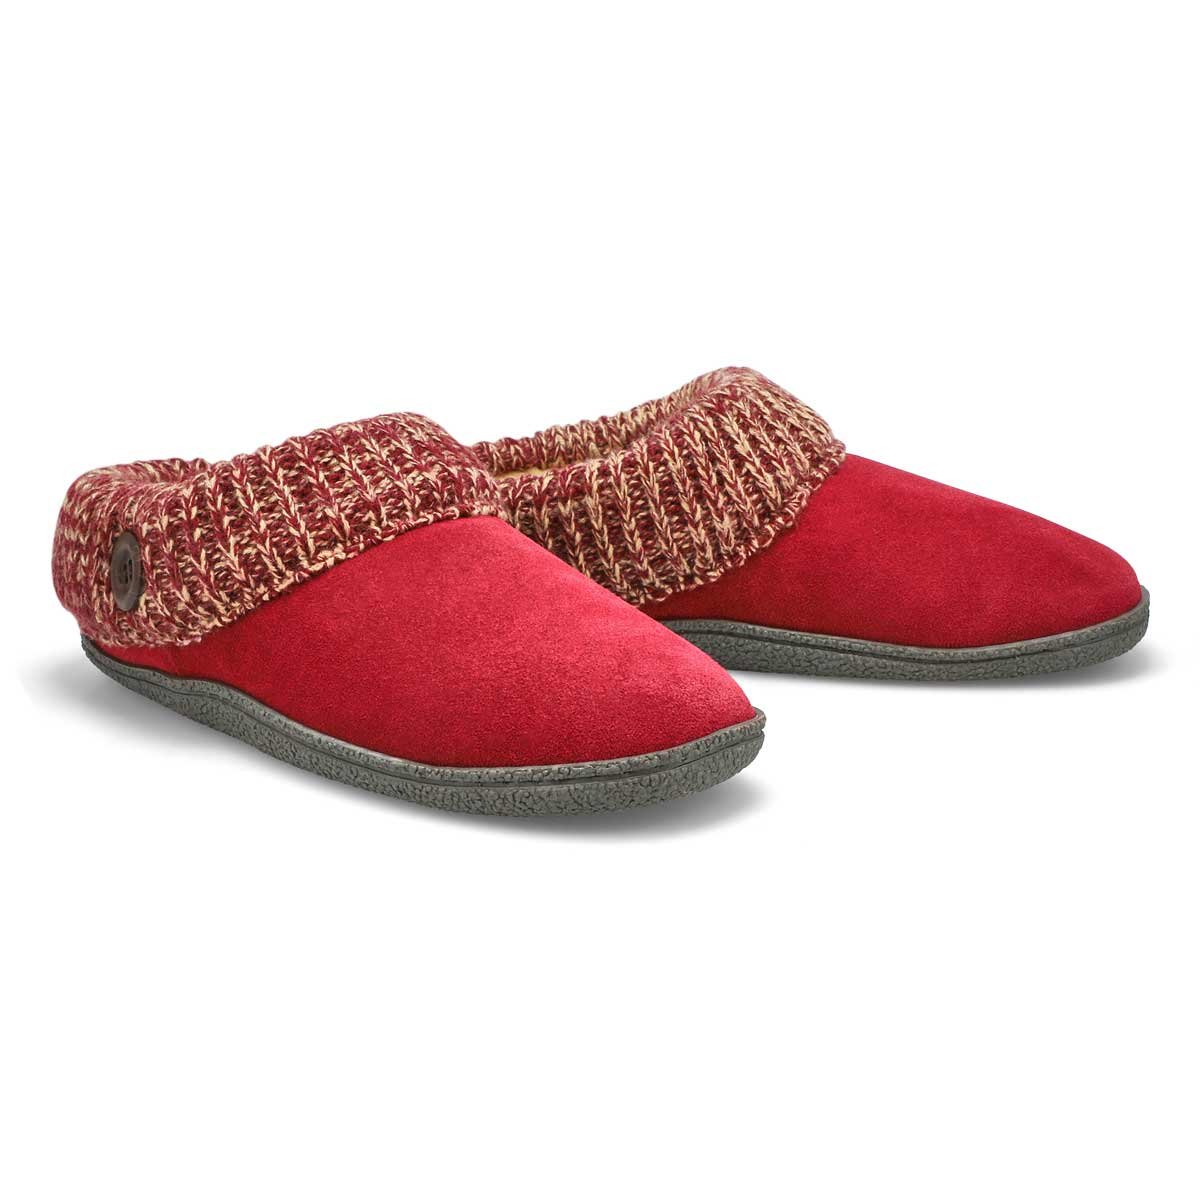 Lds Dini burgundy memory foam slipper